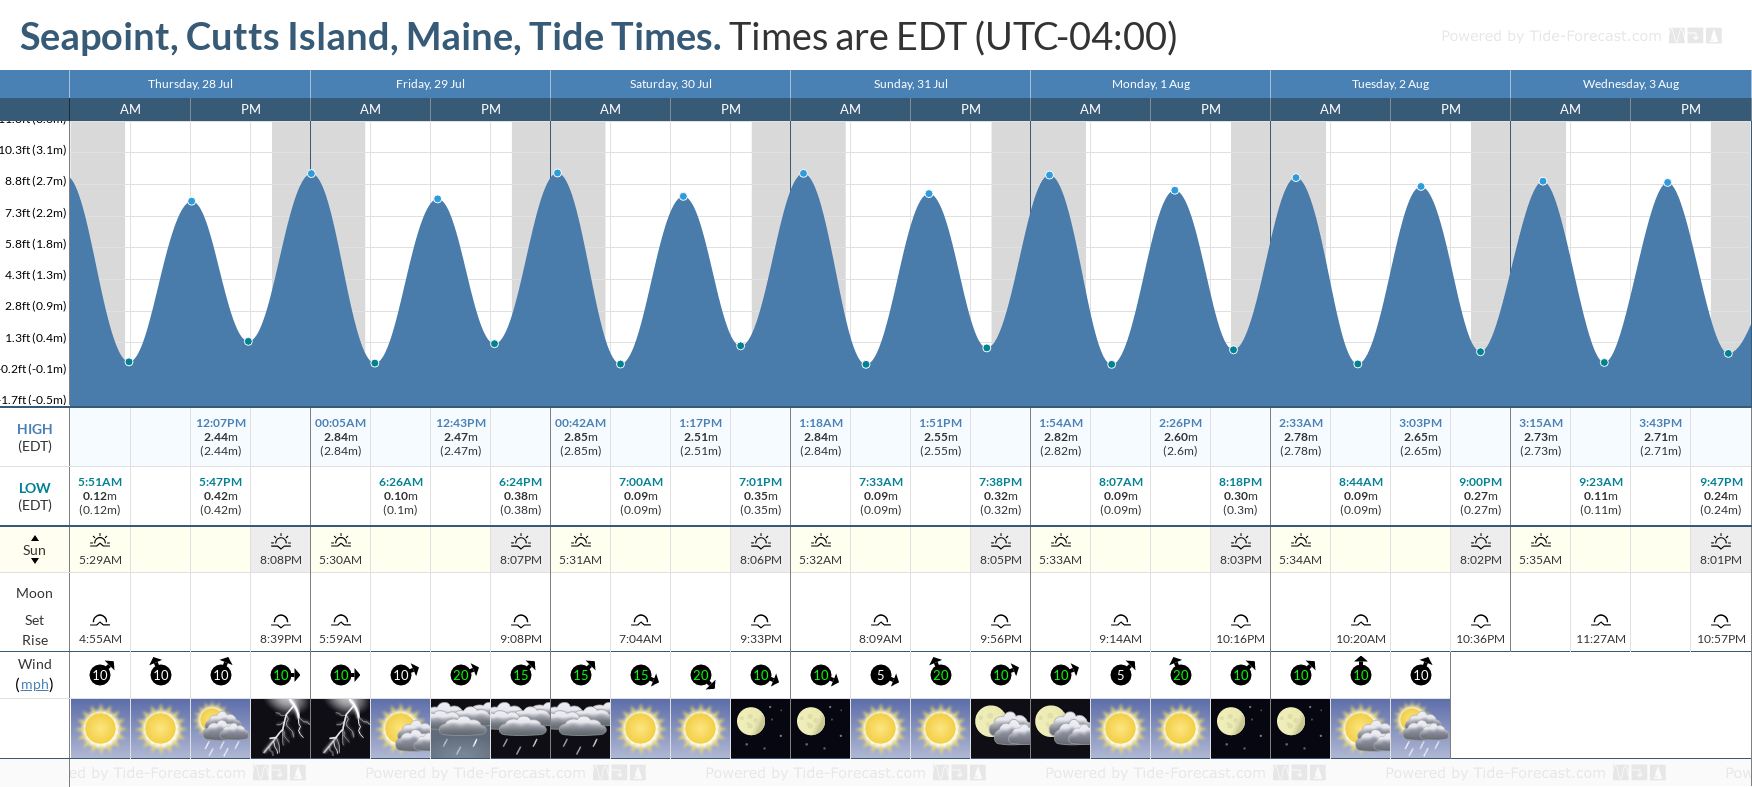 Seapoint, Cutts Island, Maine Tide Chart including high and low tide tide times for the next 7 days